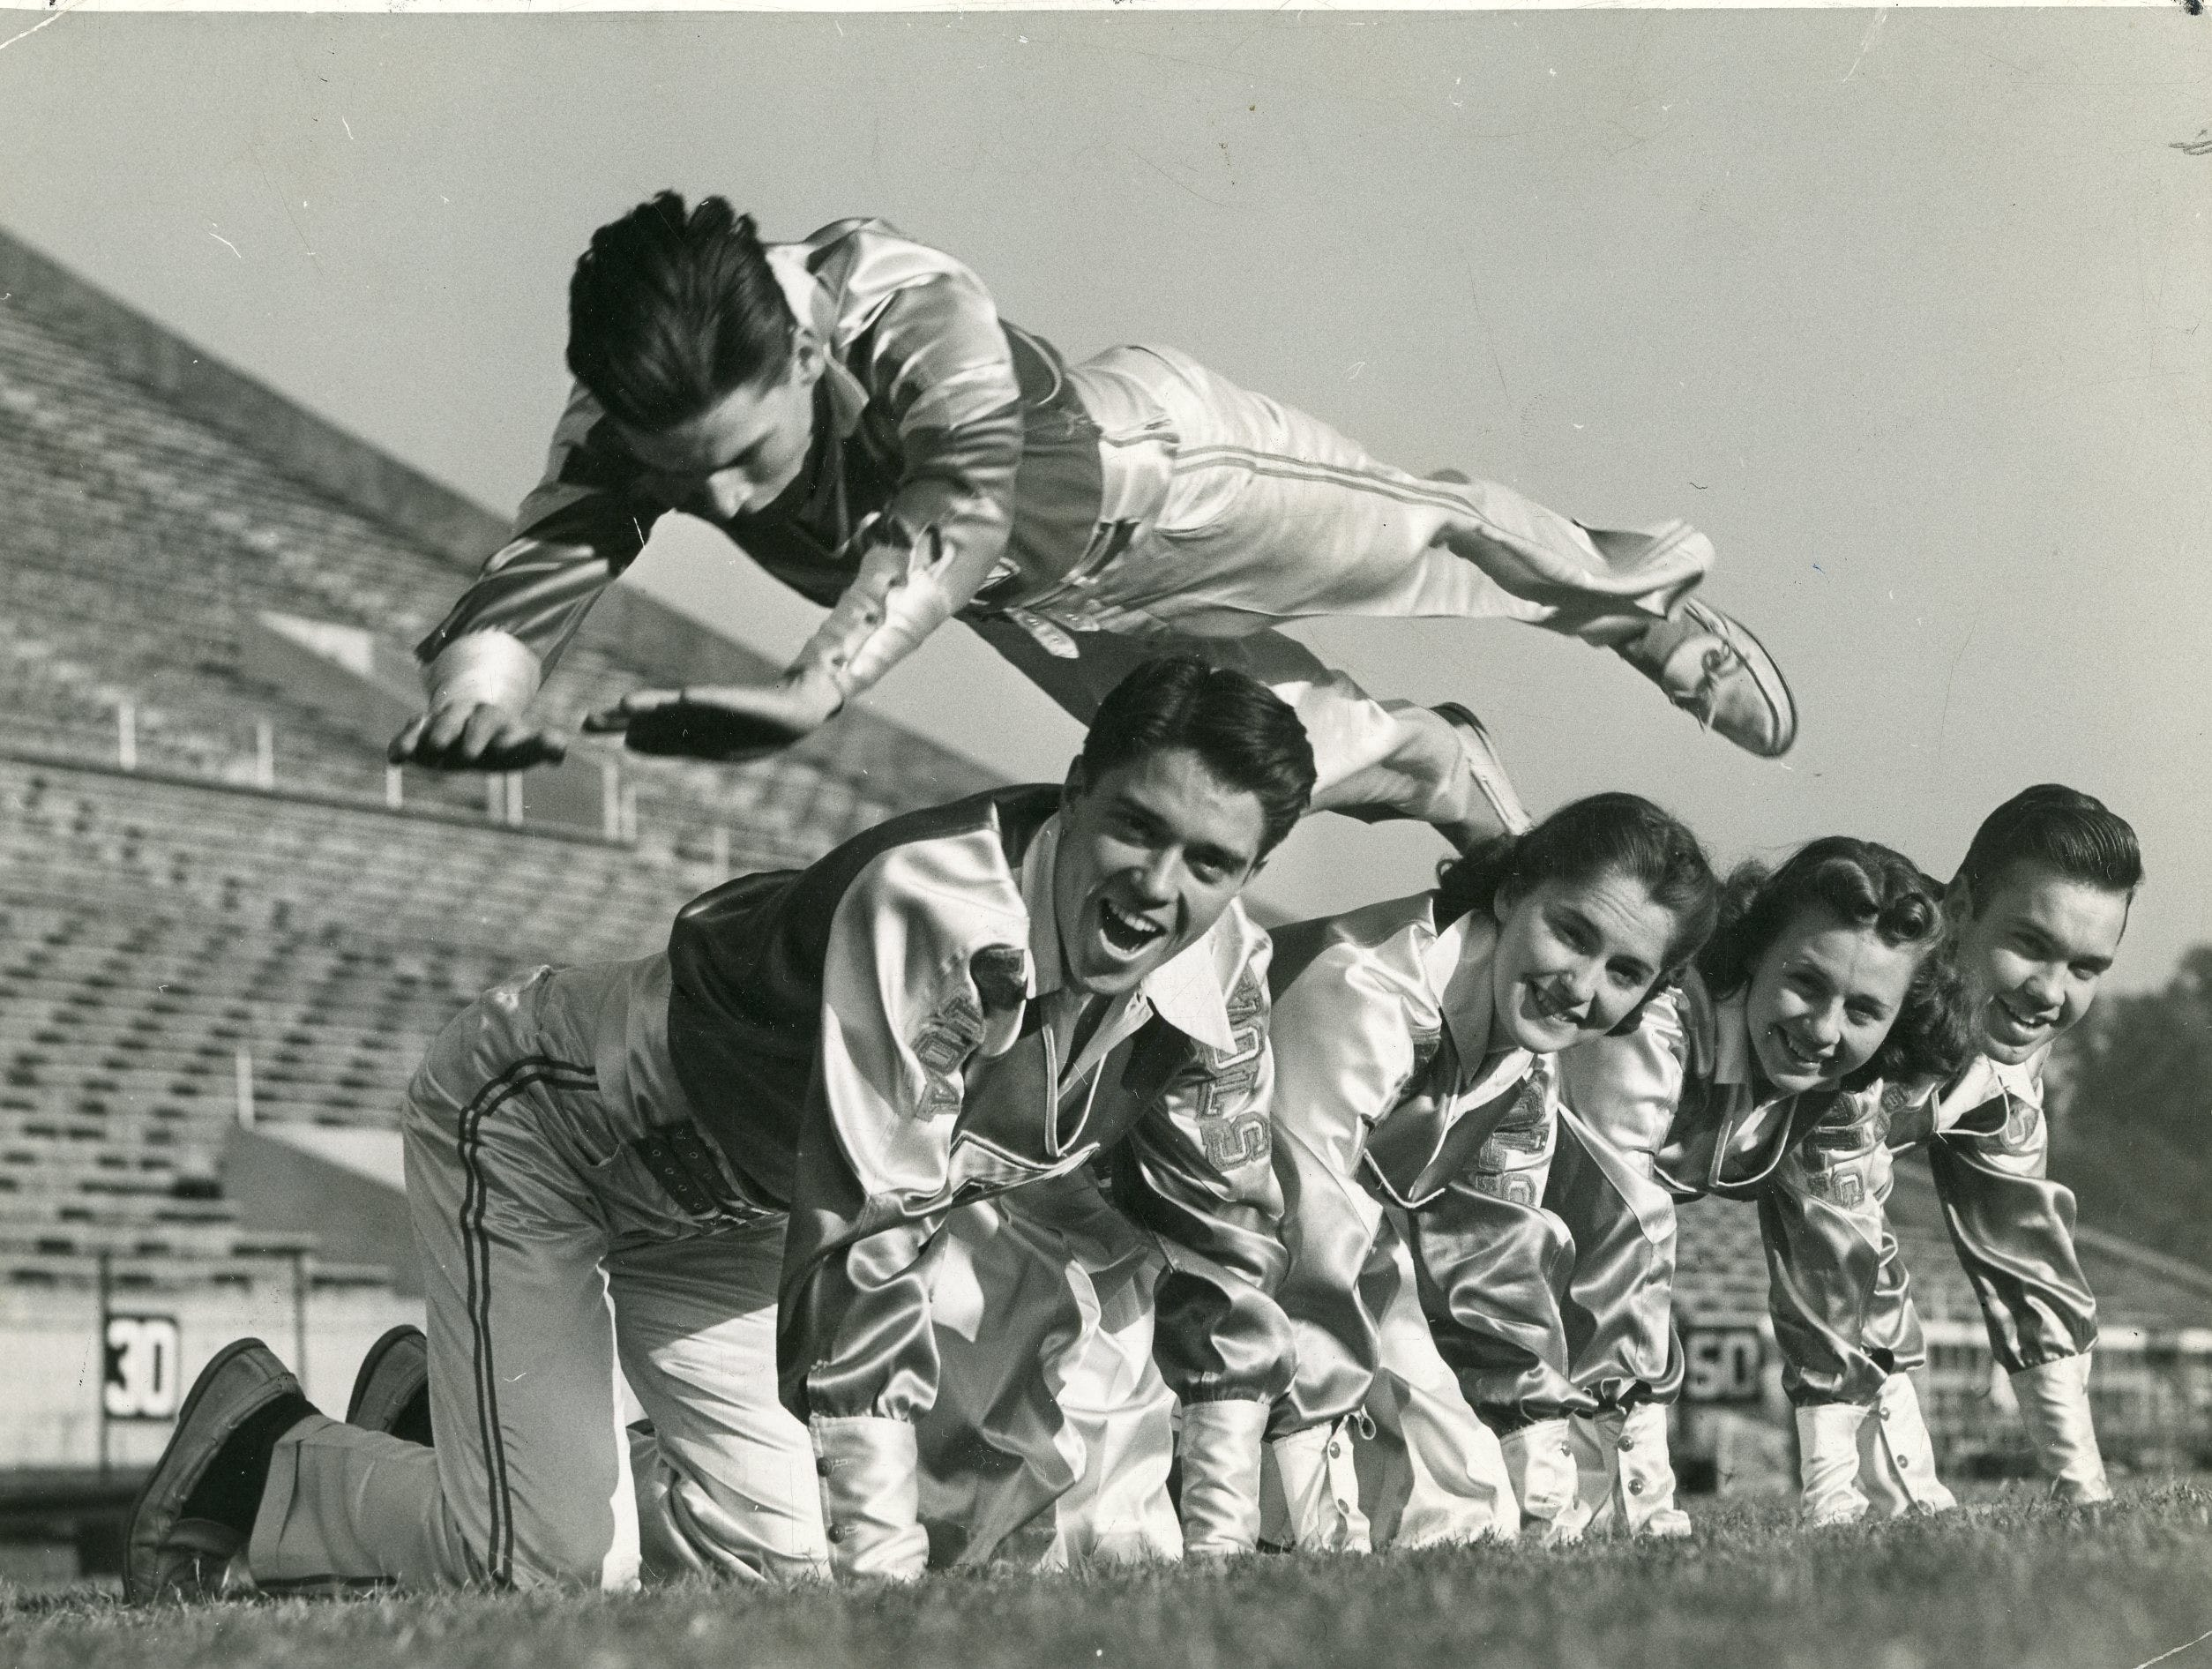 The 1940 UT cheerleaders perform a stunt for the camera. Pictured are Doug Lovejoy (in air), Gaines Stuart, Wilma Rogers, Fay Griffin and Clyde Knisley.